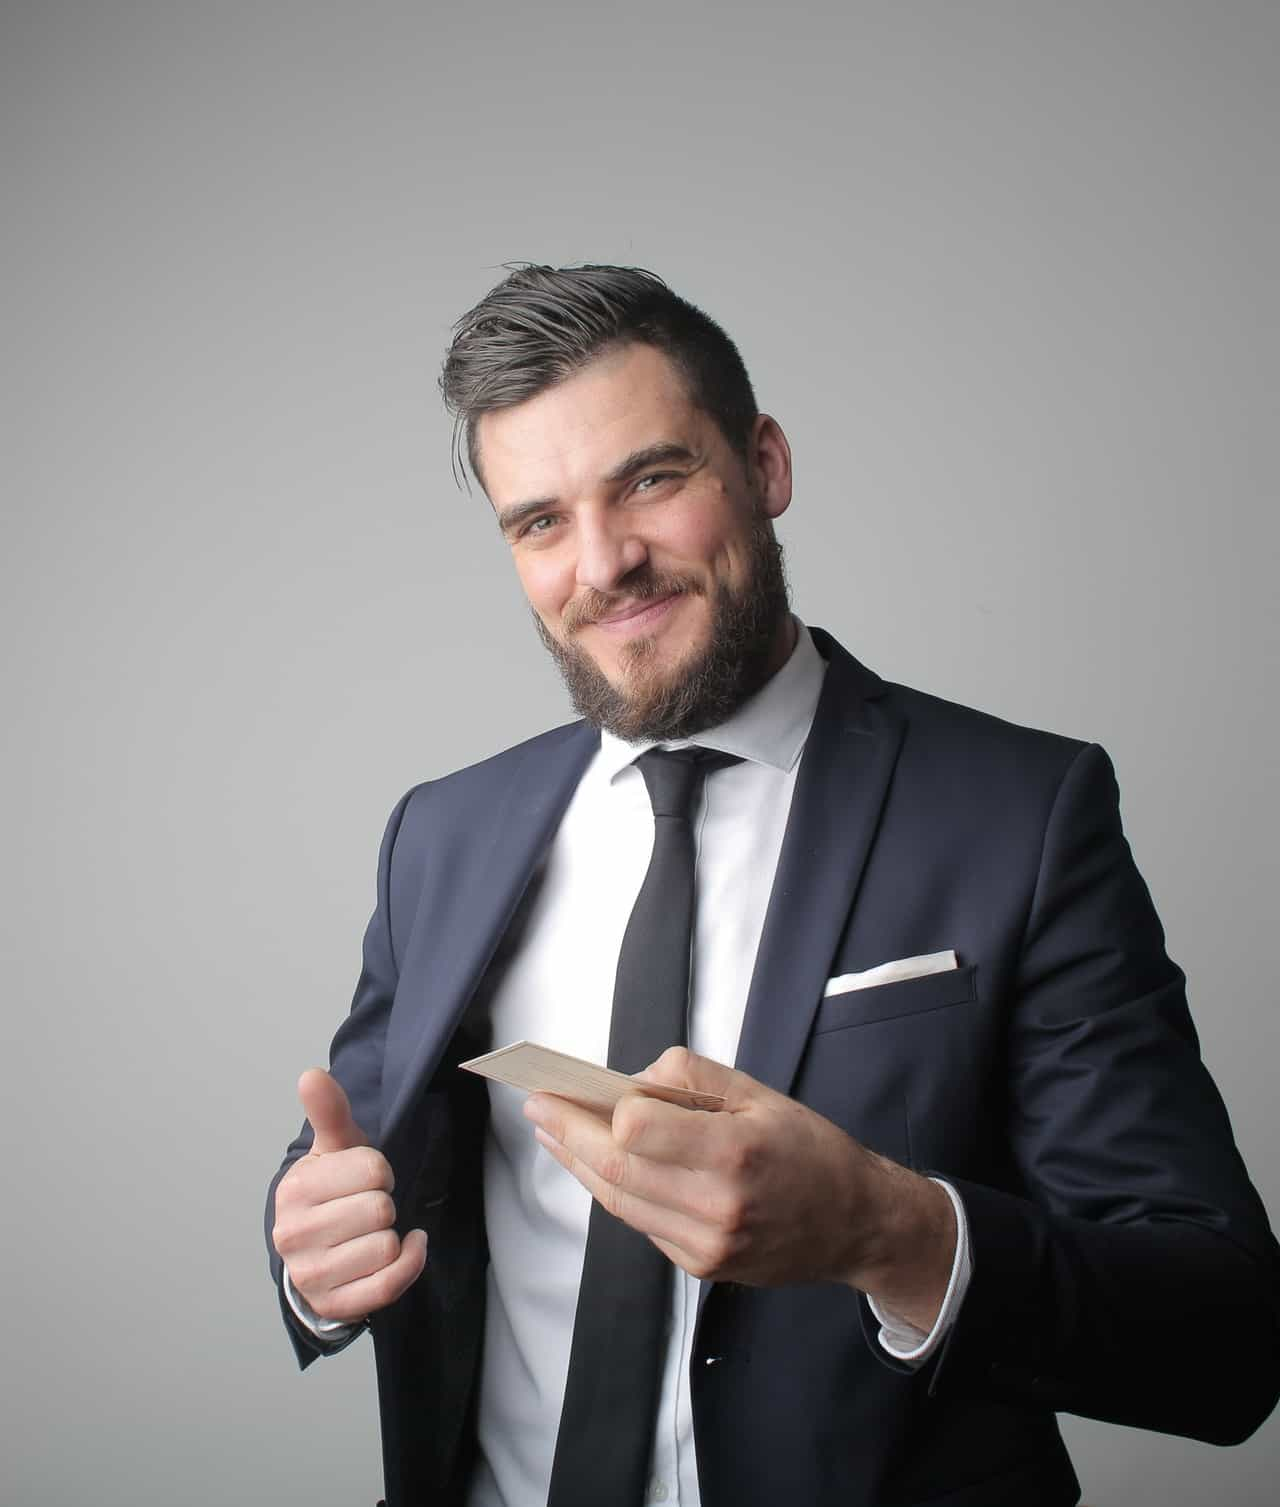 Man in suit smiling offering business card